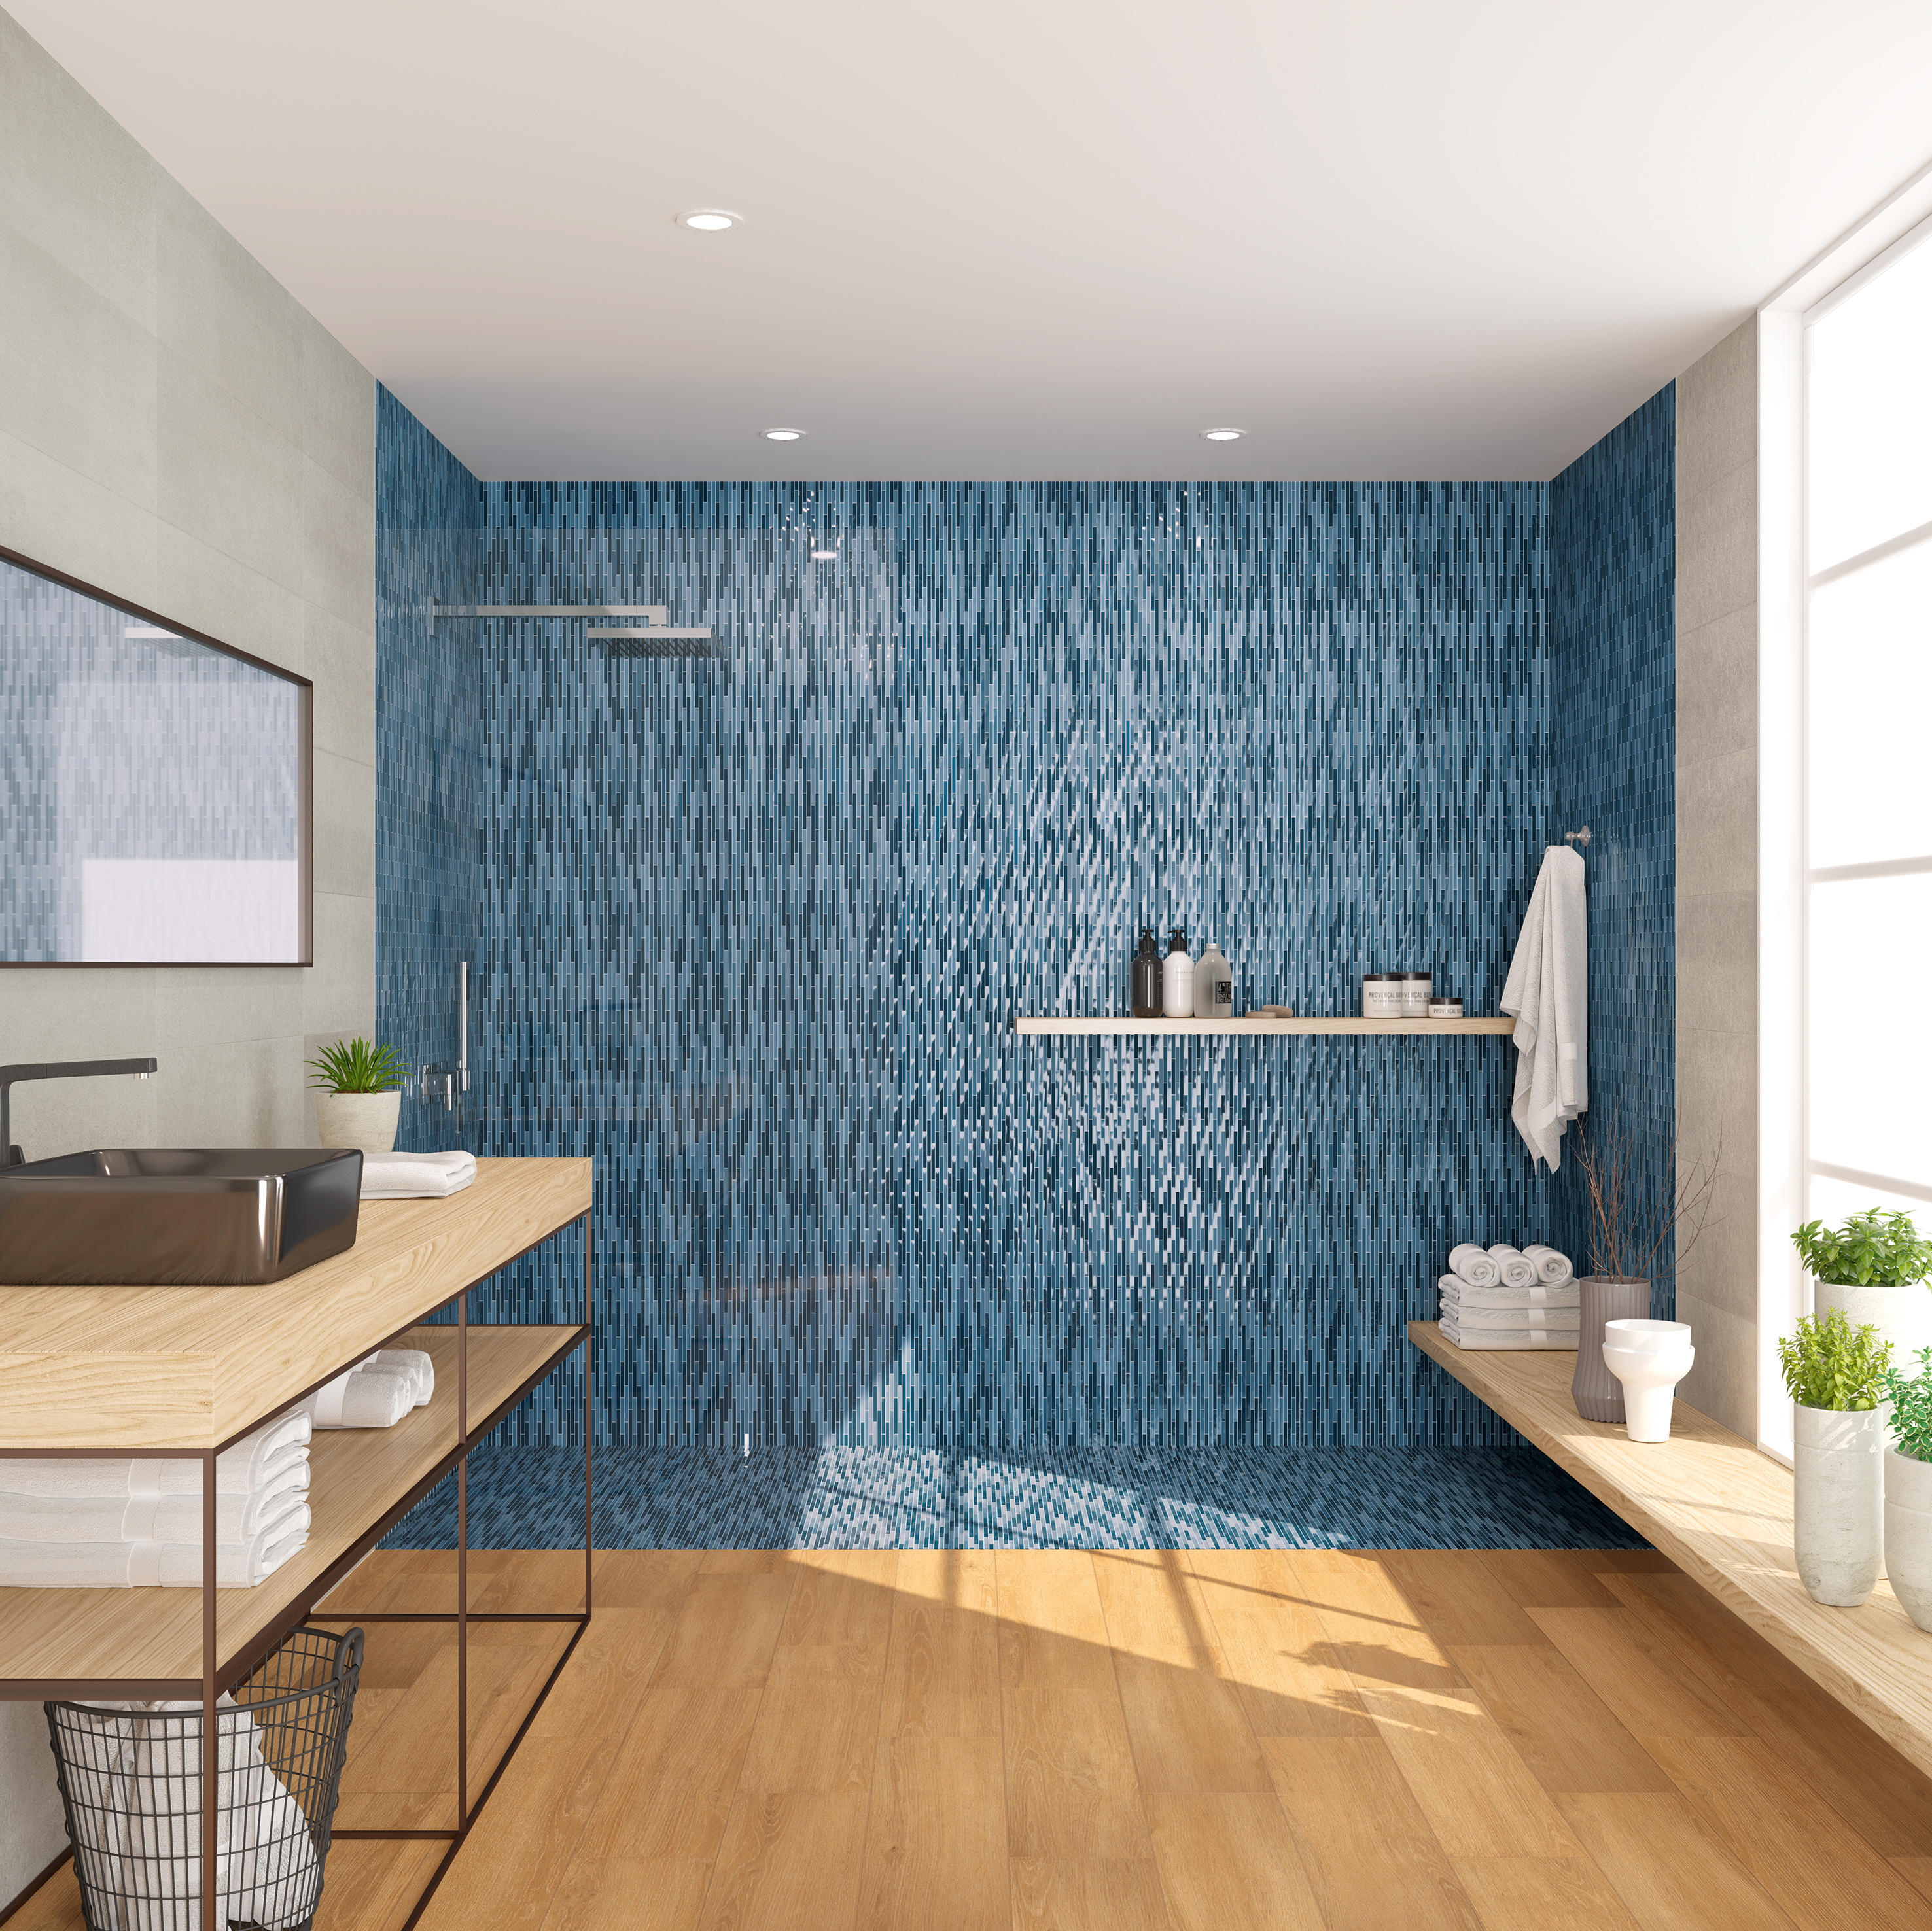 AOSTA | AOSTA ARGENT - Tiles from Dune Cerámica | Architonic